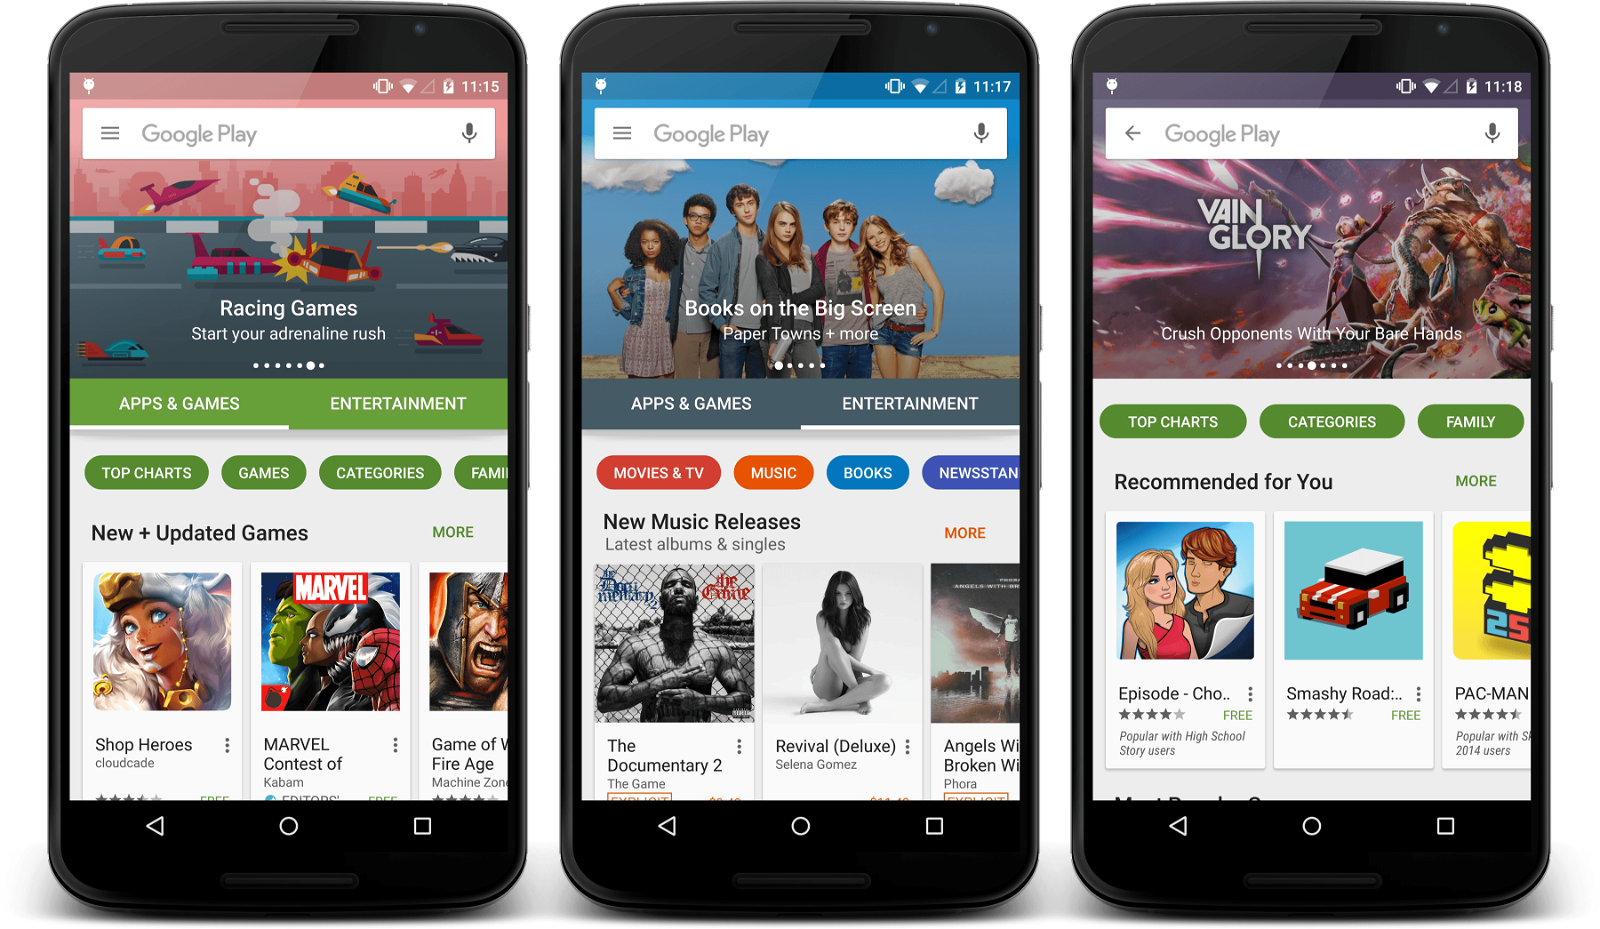 Google Play Store Getting Fresh New Look, Major UI Update Rolling Out Now 1